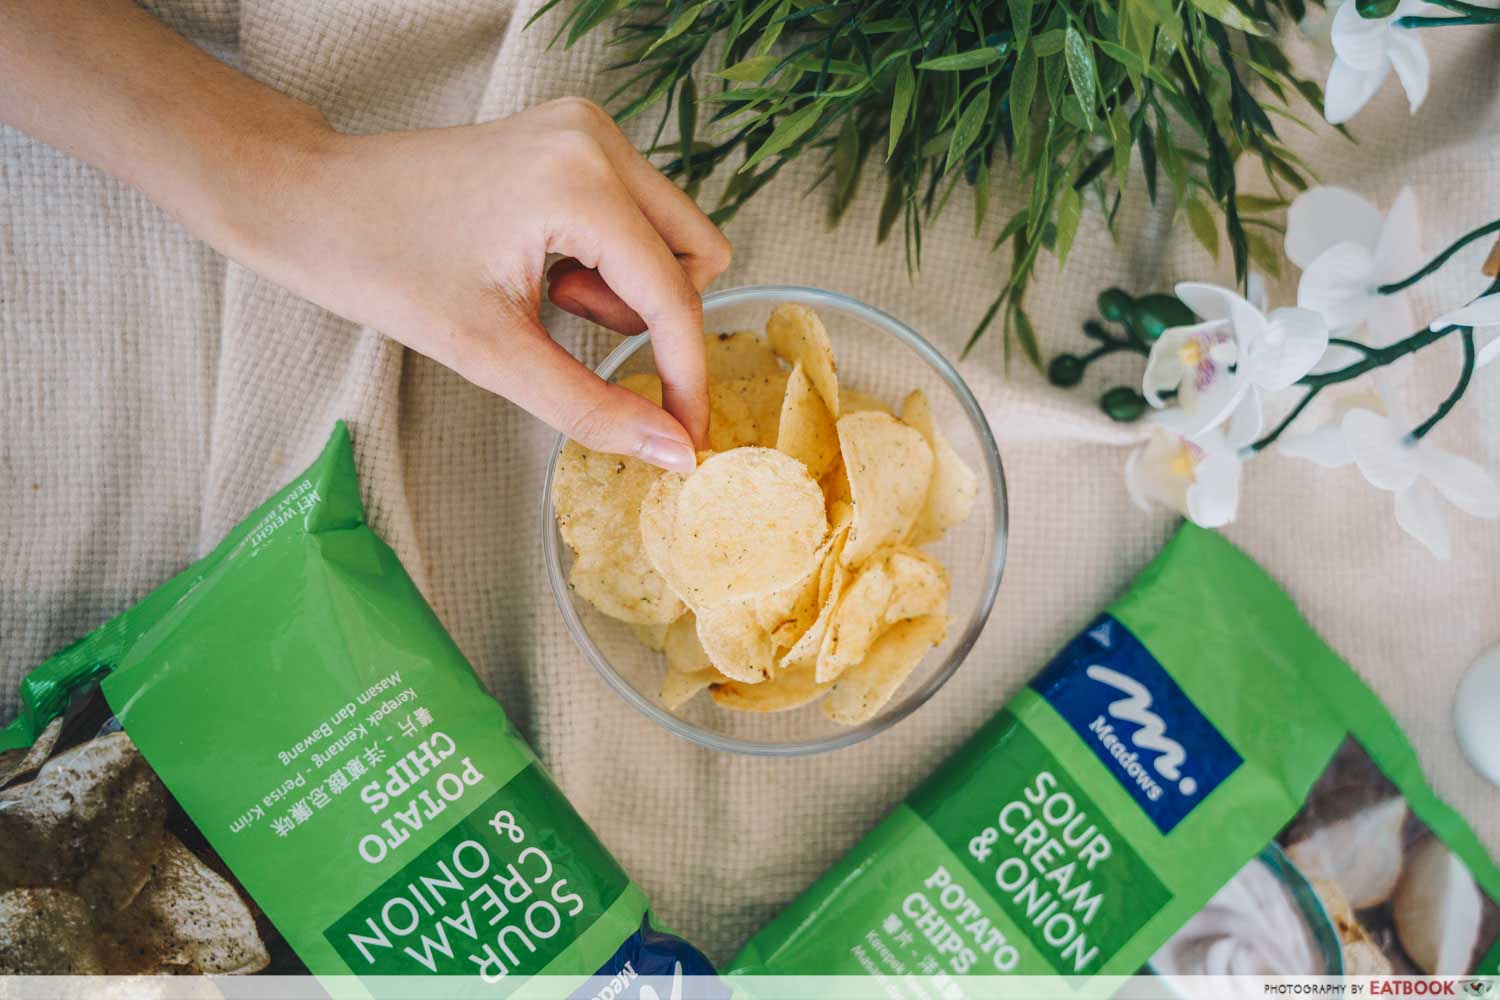 Meadows - sour cream and onion chips